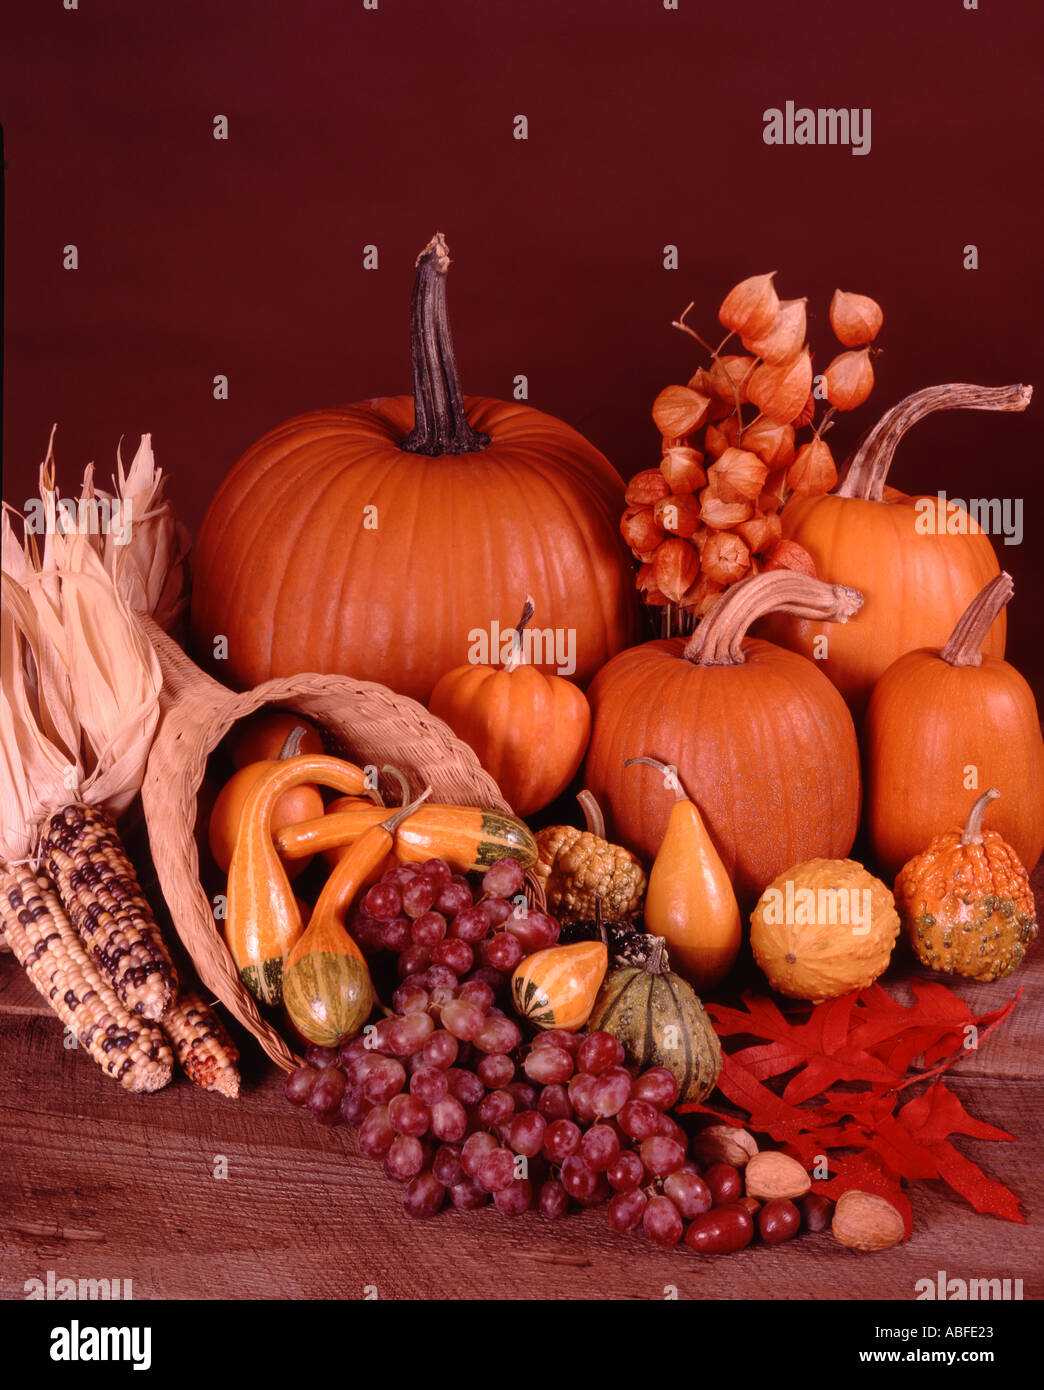 Harvest still life with cornucopia and autumn vegetables against a weathered barnwood background - Stock Image